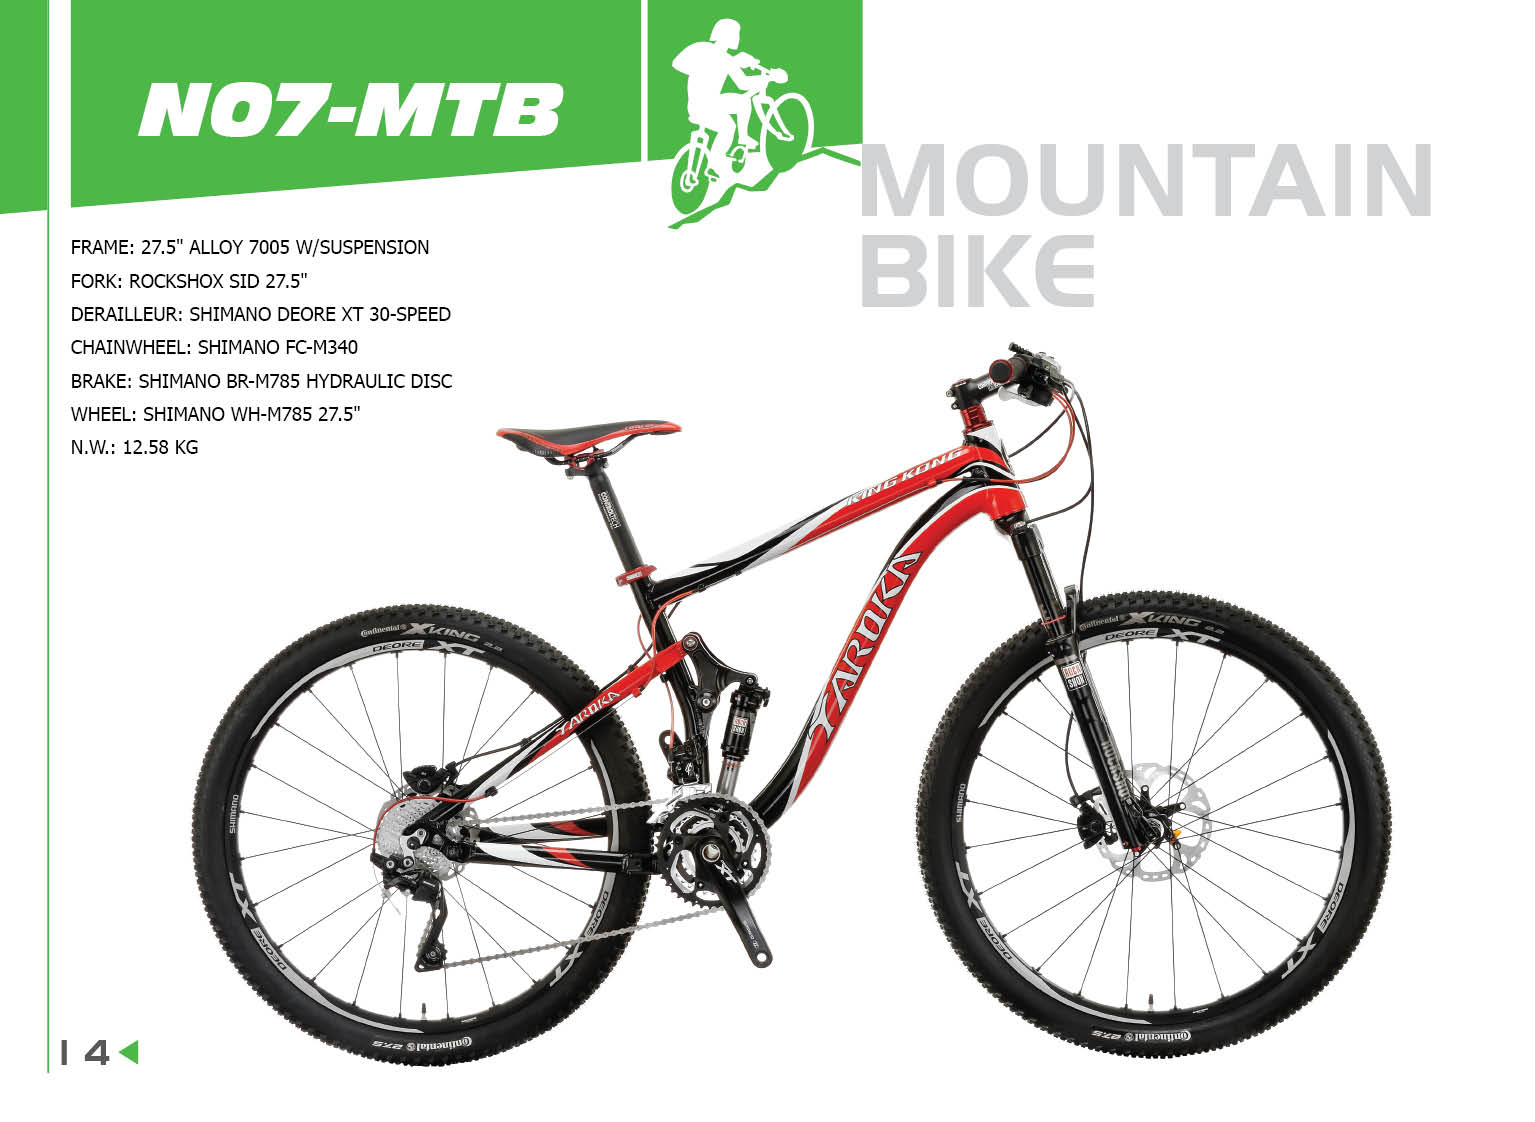 27.5 INCH KING KONG HIGH QUALITY DOUBLE WISHBONE SUSPENSION MOUNTAIN BIKE WITH DEORE XT 30 SPEED